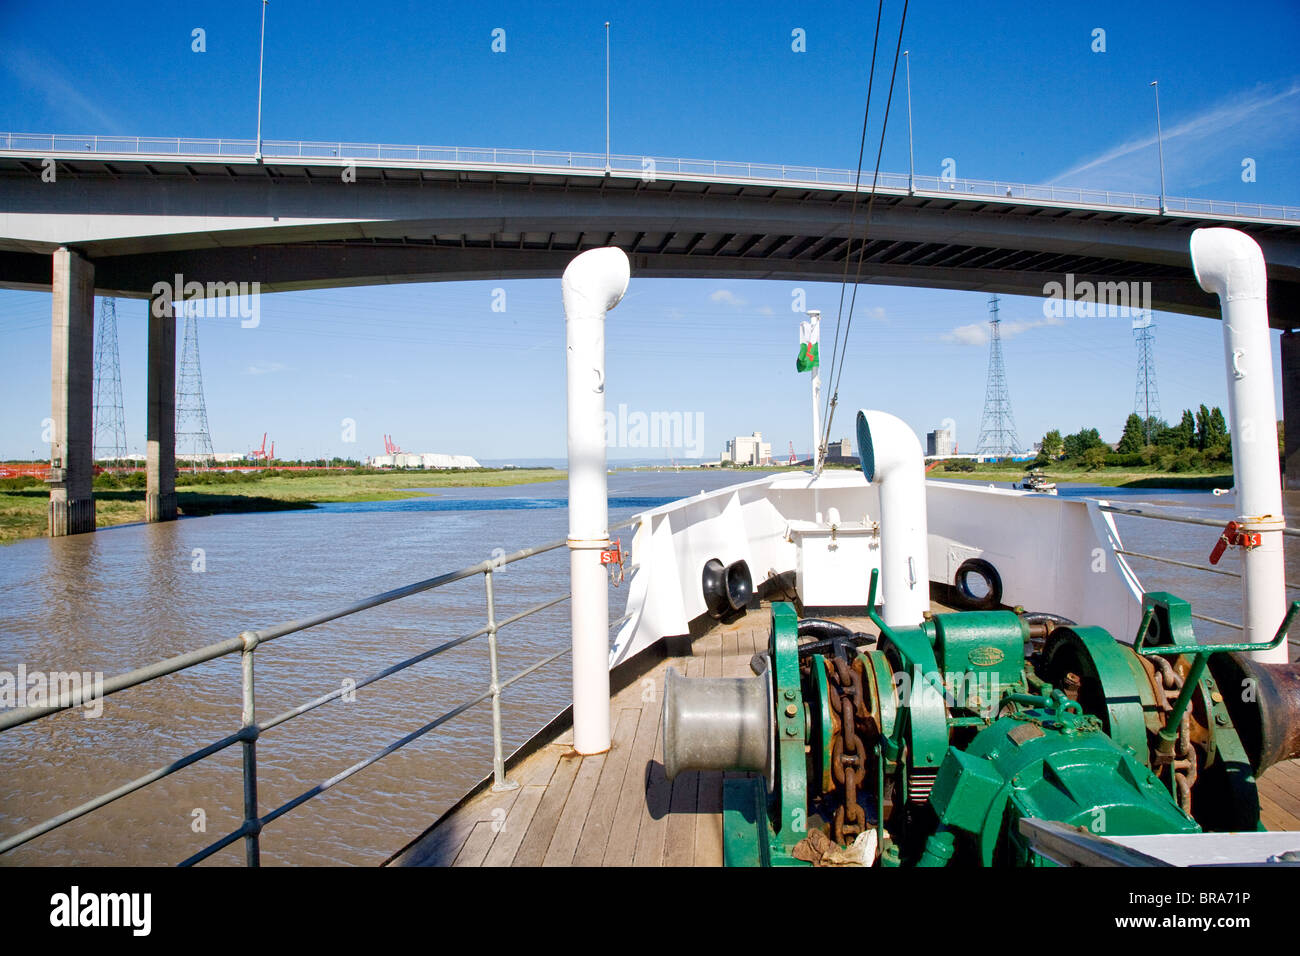 The MV Balmoral as it cruises under the A5 motorway Avon bridge at Avonmouth near Bristol and into the river Severn - Stock Image